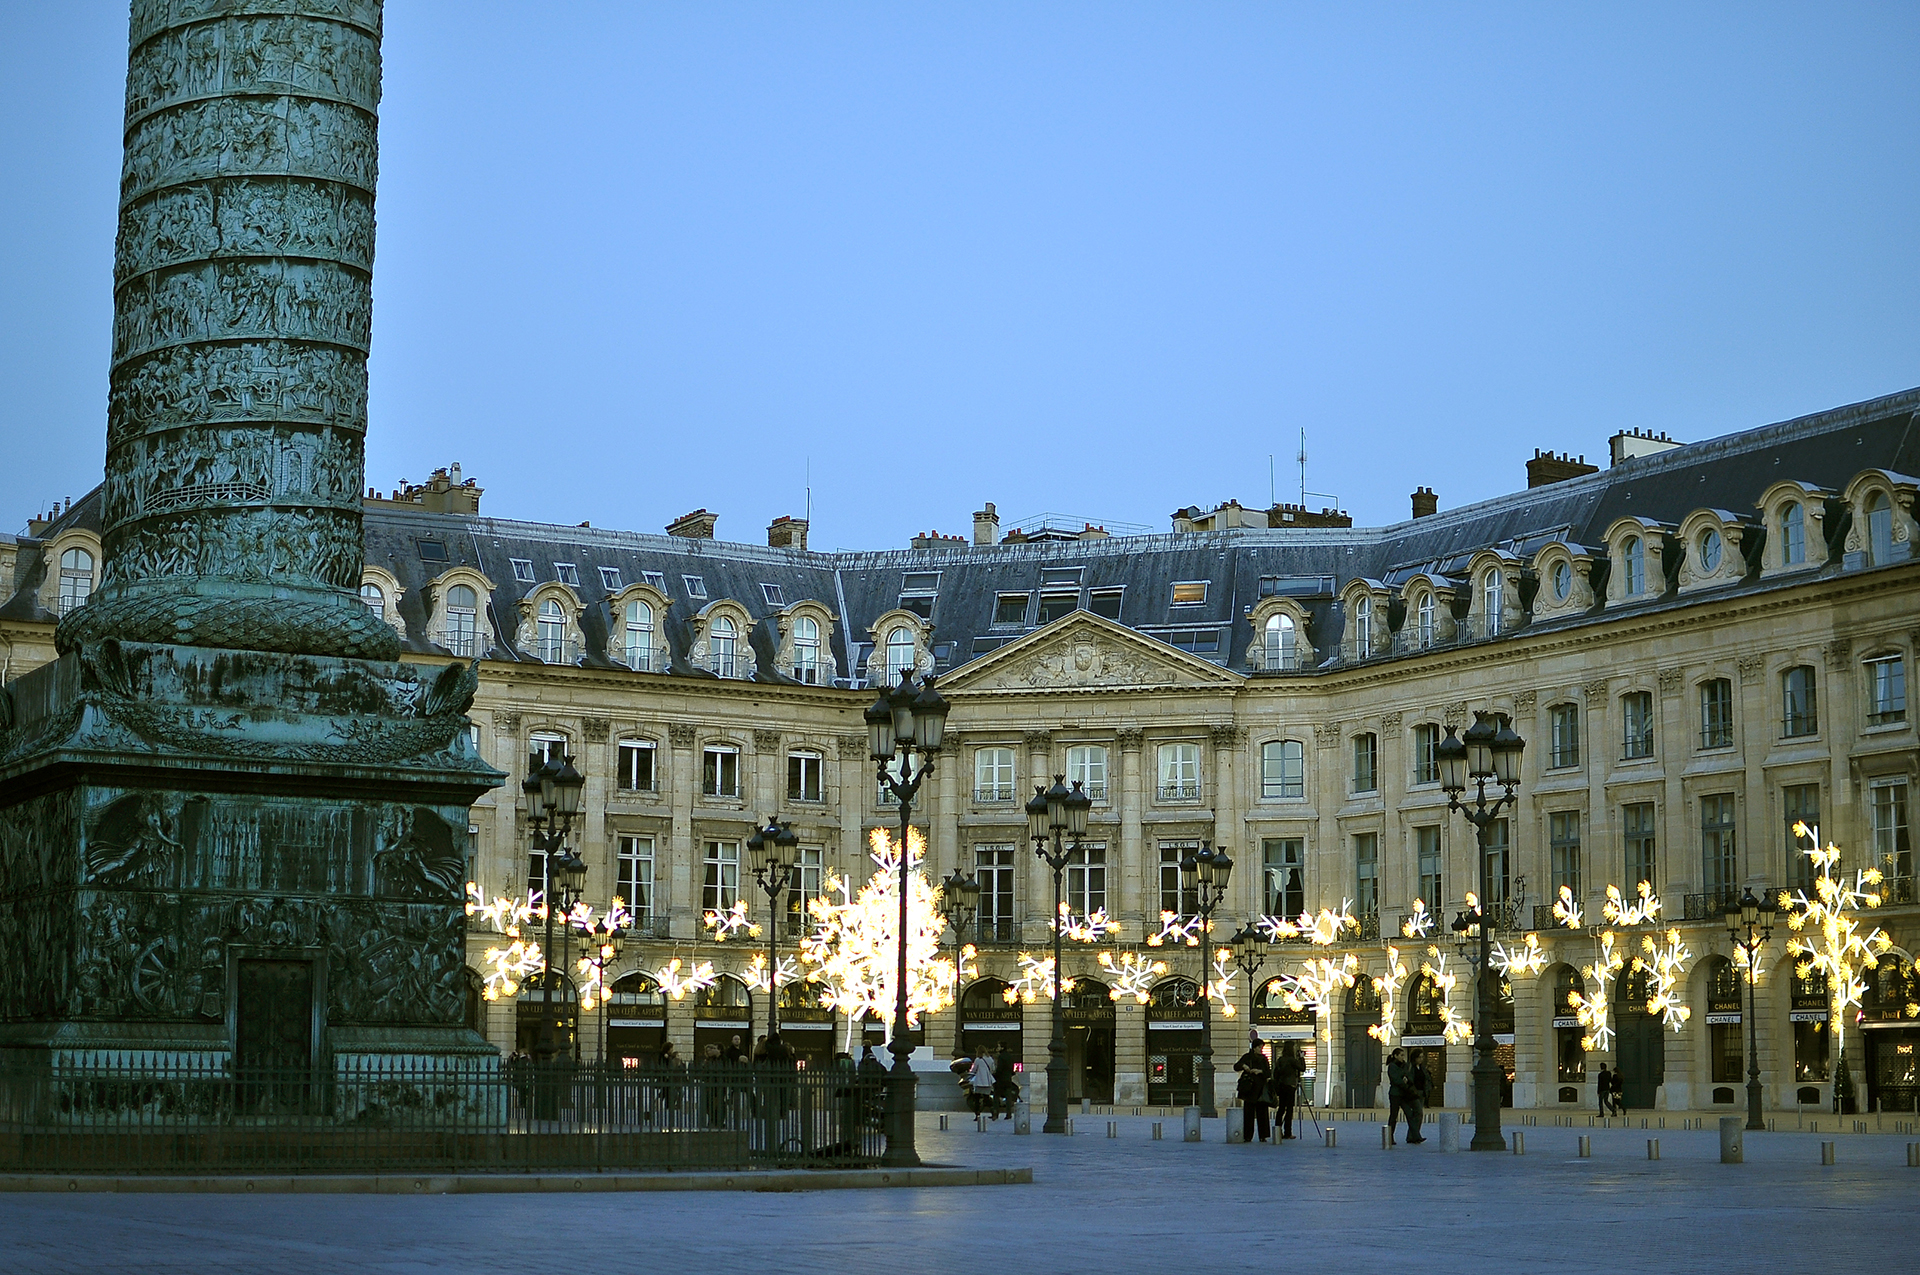 235/Exterieur/Place_Vendome.jpg